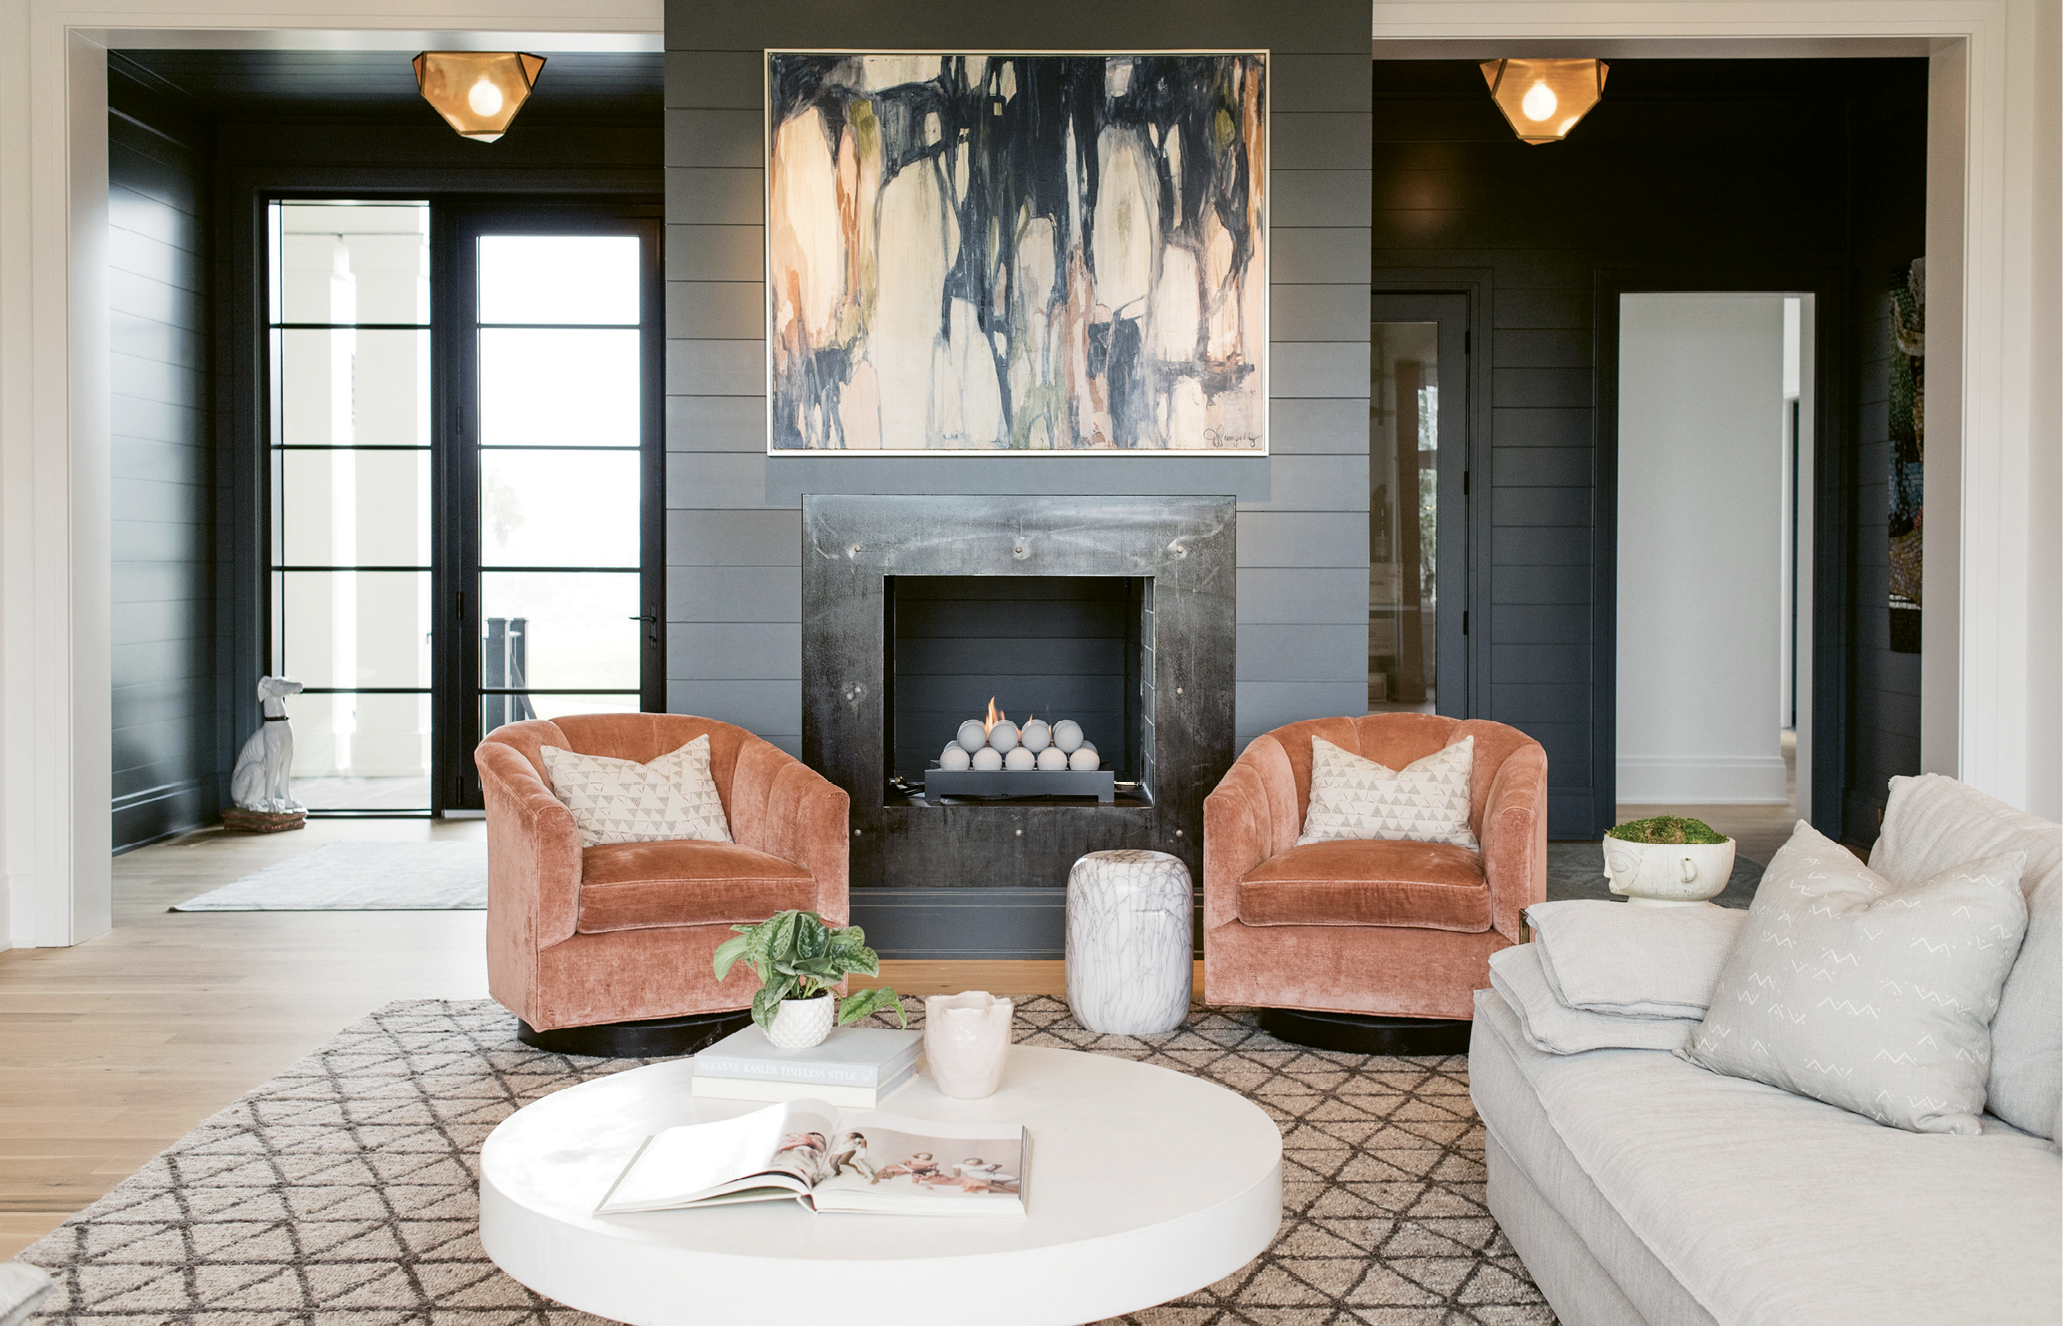 The moody foyer, crushed velvet chairs, and abstract painting by Jill Pumpelly add depth to the living room's neutral palette.